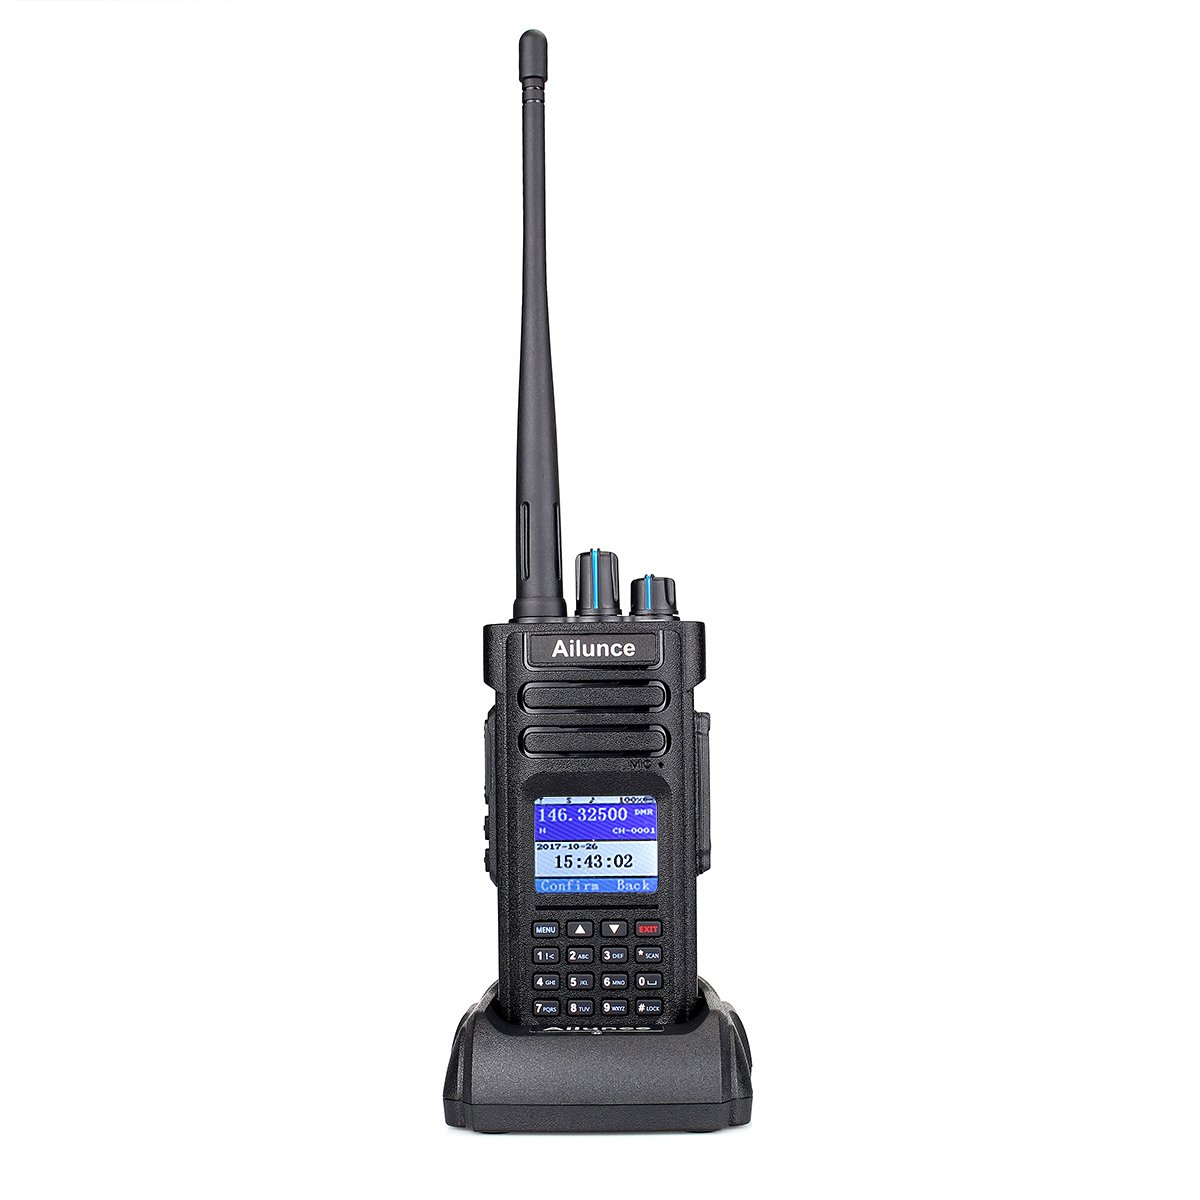 Ailunce HD1 DMR Digital Ham Radio Dual Band Dual Time Slot 10W 3000Channels 100000 Contacts 3200mAhz Waterproof long Range Two Way Radio with FM Function and Programming Cable(Black,1pack) by Ailunce (Image #1)